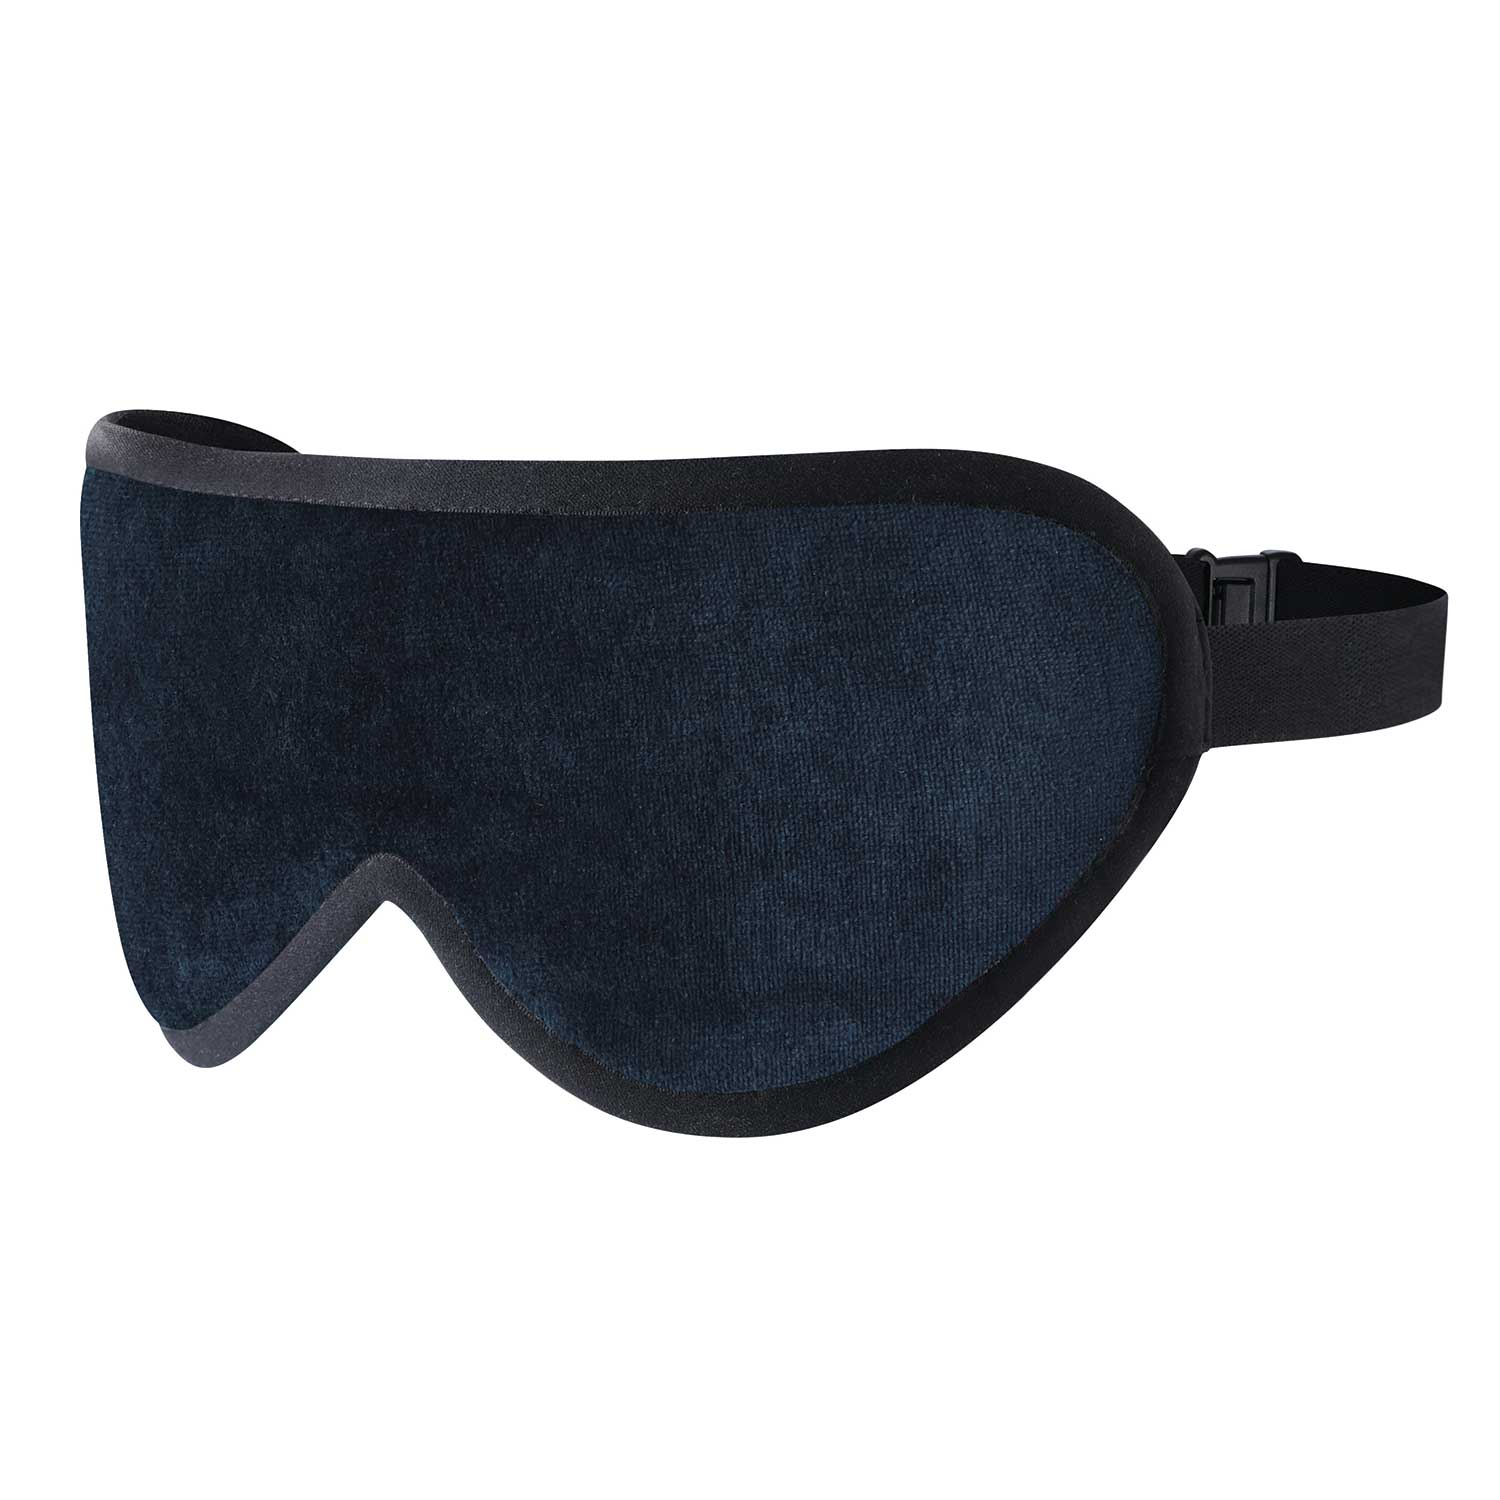 Best Quality Luxury Sleep Face Mask Masters Of Mayfair UK Navy Blue Unisex